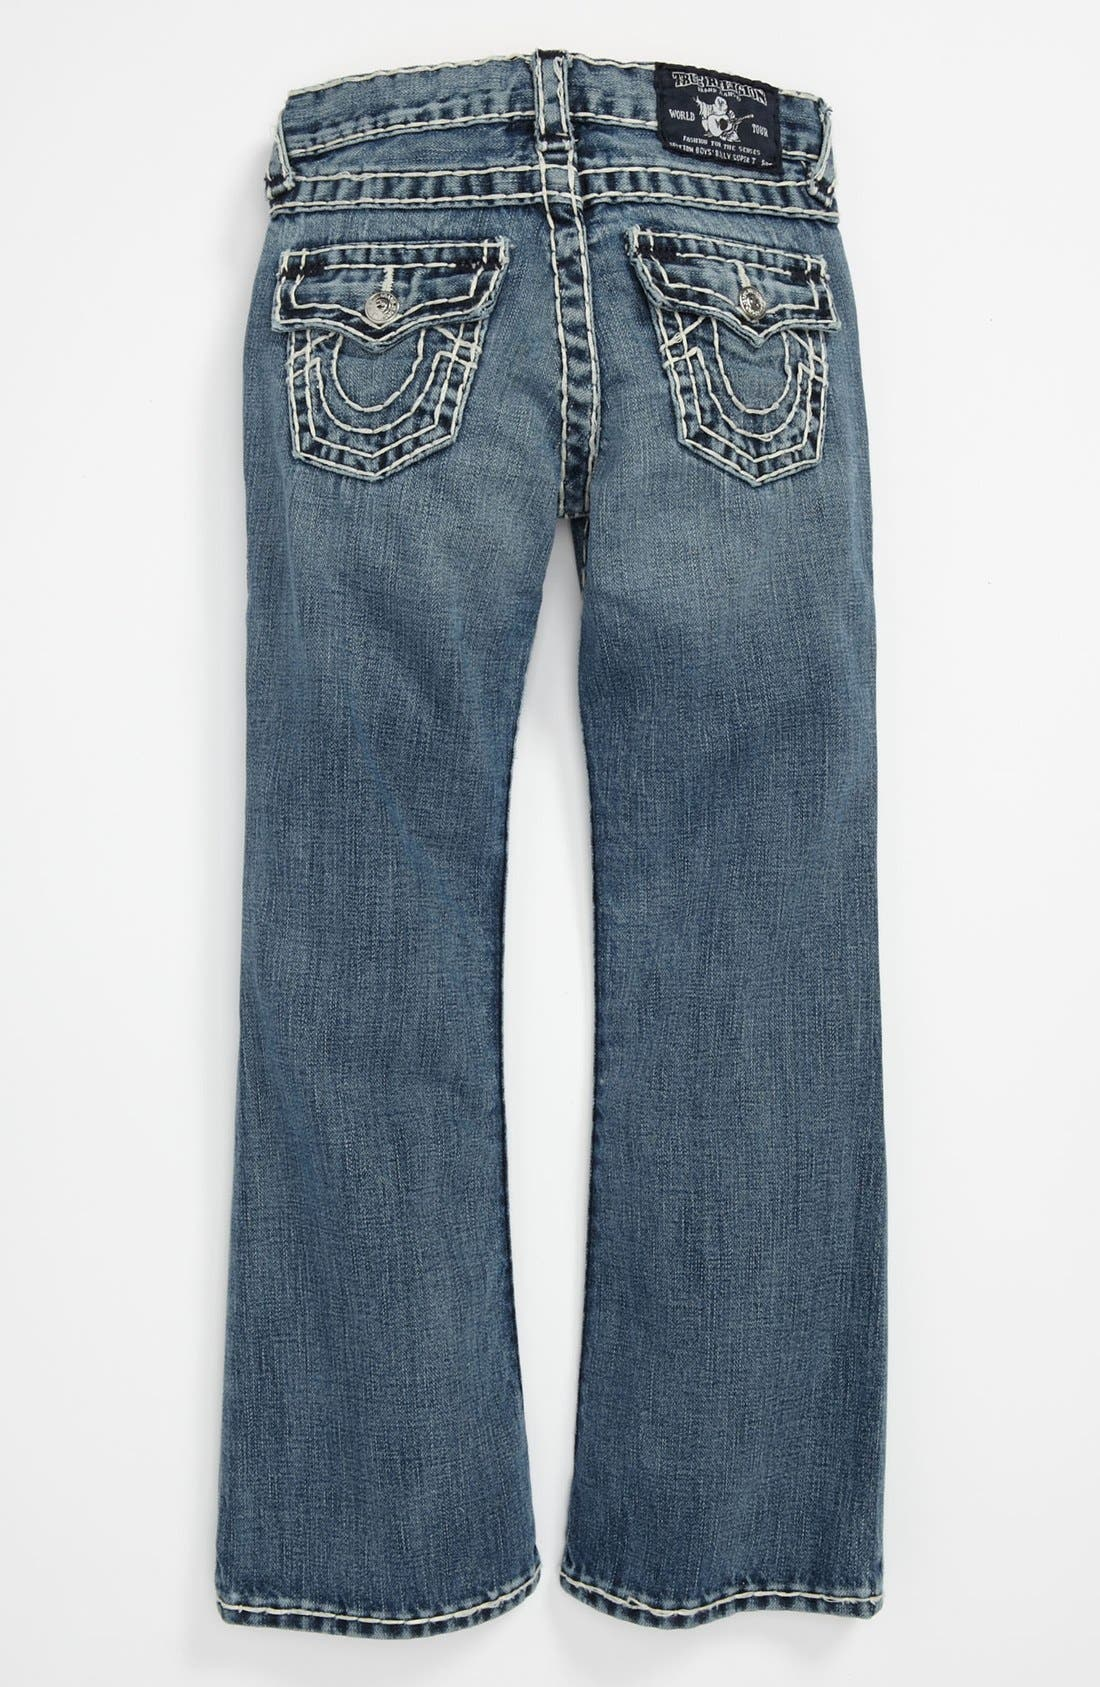 Alternate Image 1 Selected - True Religion Brand Jeans 'Jack' Bootcut Jeans (Big Boys)